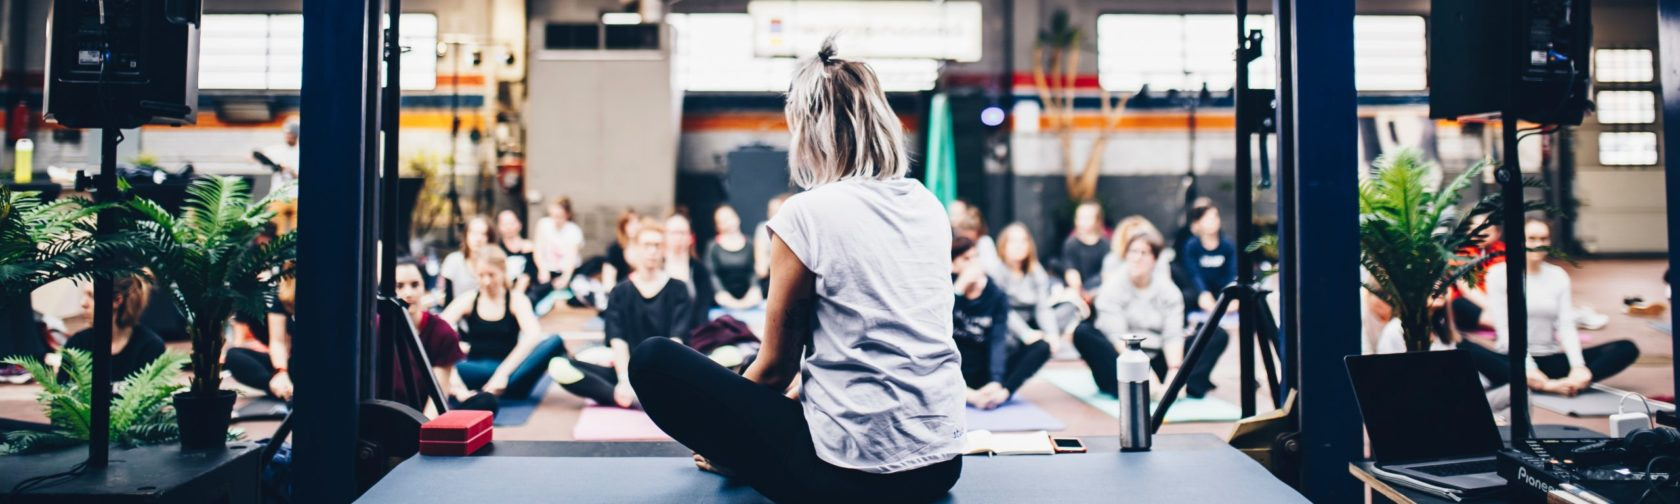 Commitment and Discipline blog on The Fat Yogis